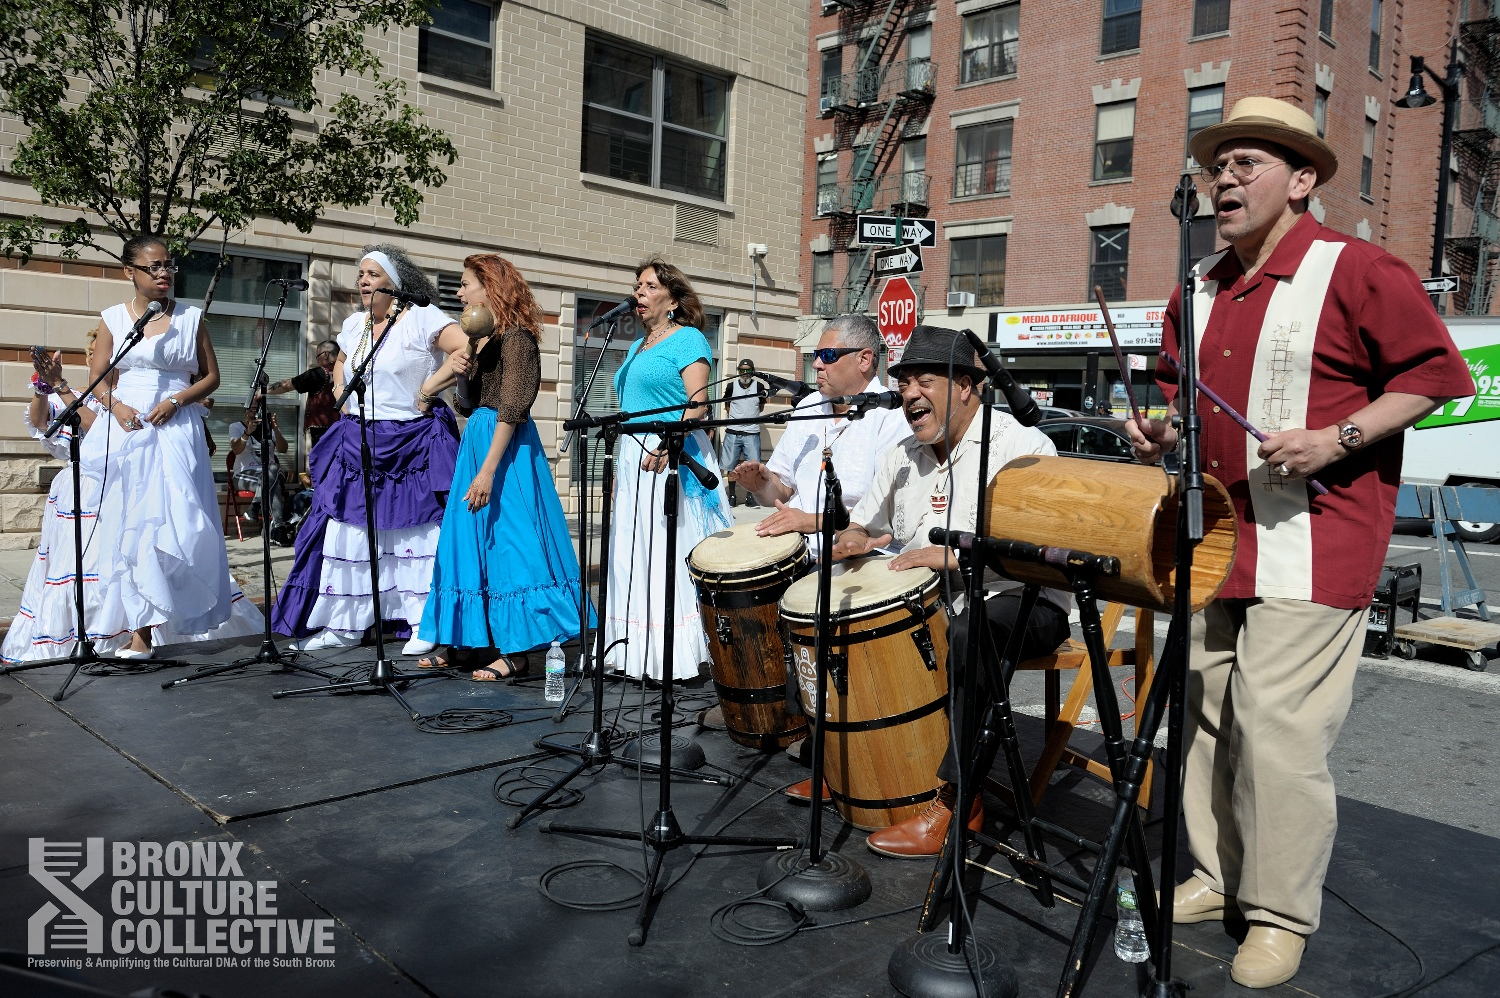 BombaYo Culture En Vivo performs at the 'WE ARE MELROSE: Harvesting Culture,' a community-wide street festival created by BxCC in partnership with Nos Quesdmos, Bronx Music Heritage Center, and YUCA Arts. (Image credit: Ed Alvarez)